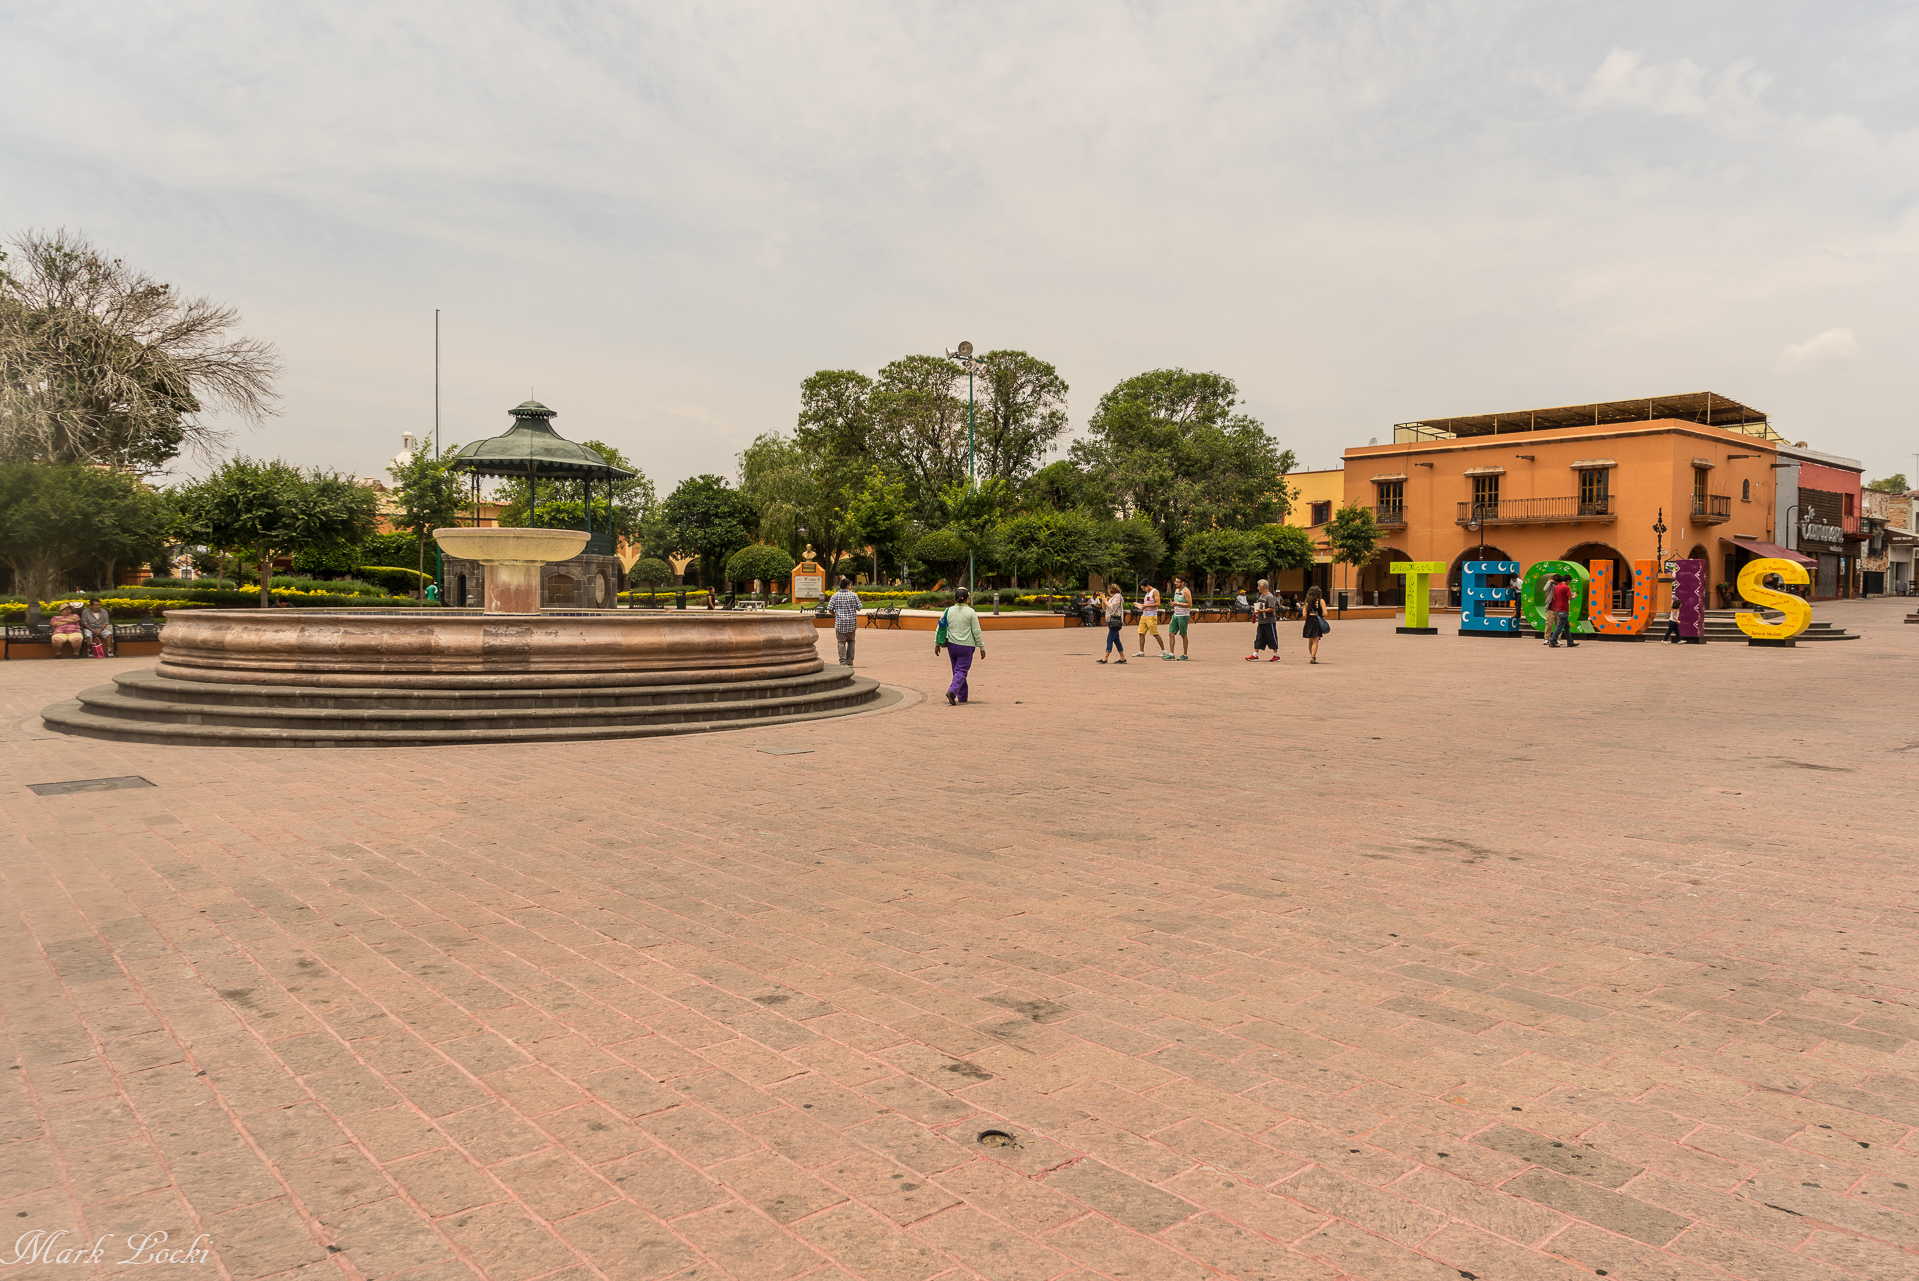 The town square in Tequisquiapan